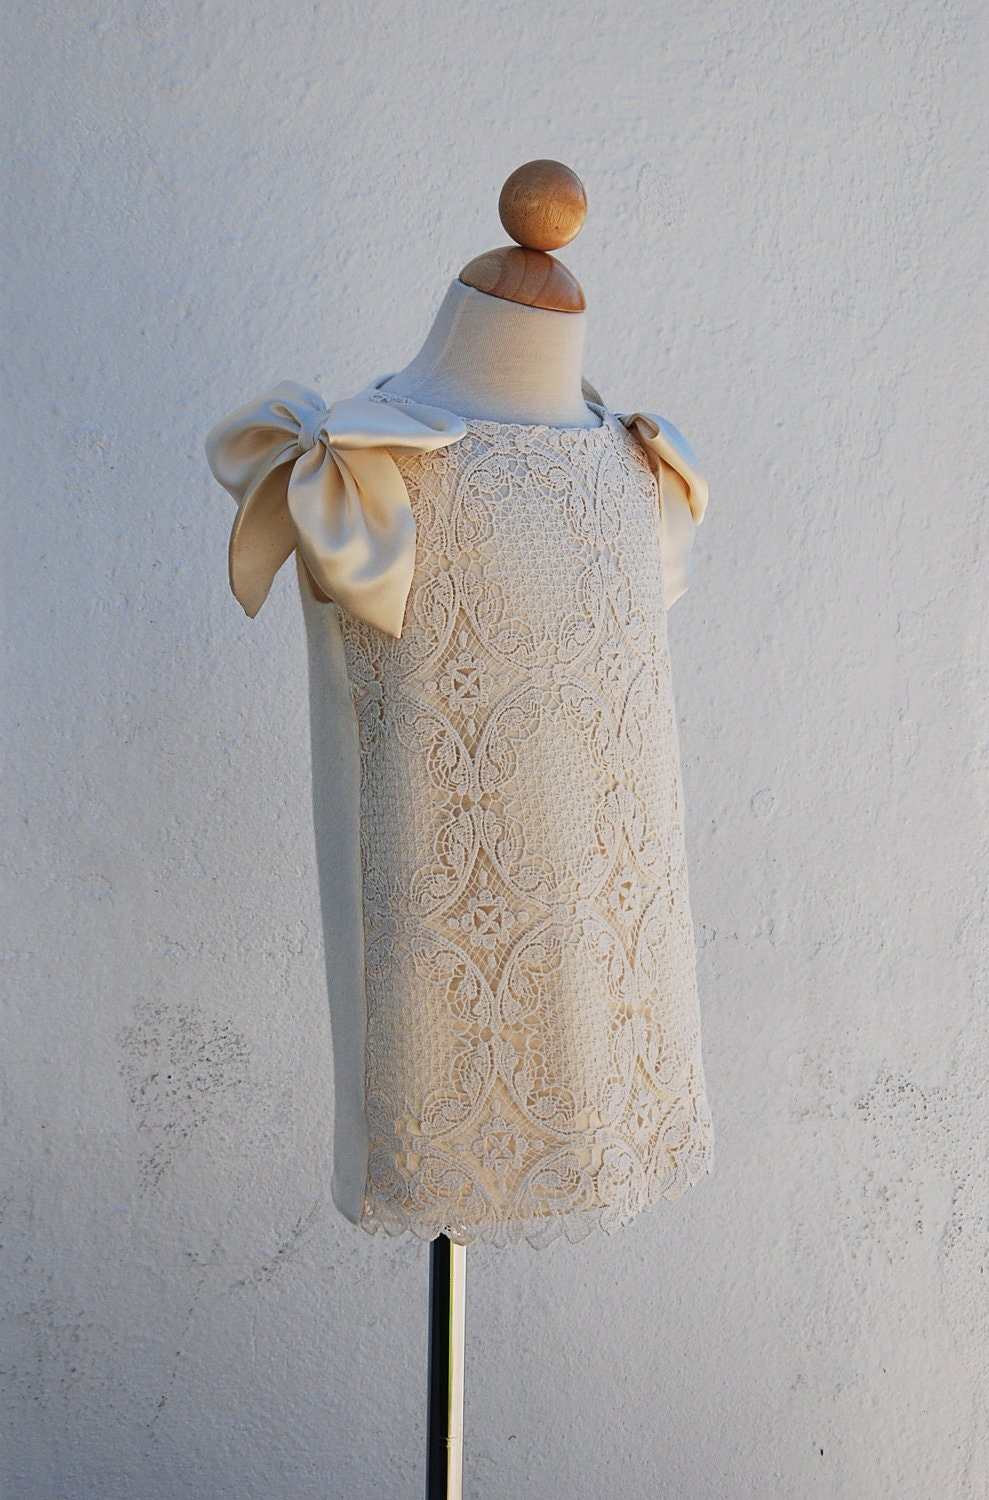 "Flower Girl Dress, Upcycled Cotton Lace, Silk Charmeuse and Cashmere, One-of-a-Kind, knee-long ""Ivory Softness"" size 2, Ready-to-Ship"